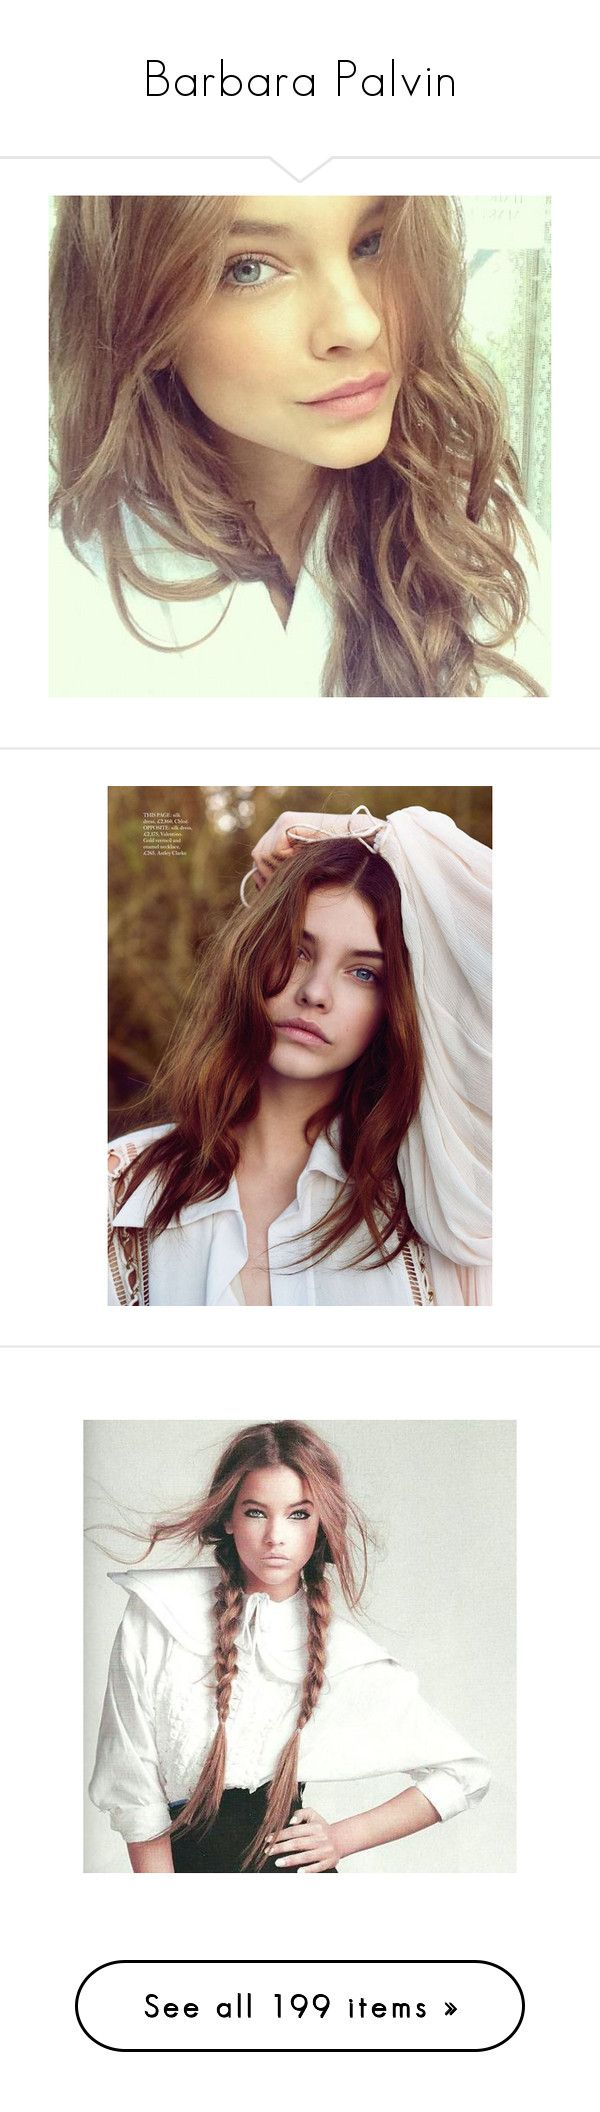 """""""Barbara Palvin"""" by andimarie1987 ❤ liked on Polyvore featuring barbara palvin, girls, barbara, hair, pictures, justin bieber, people, addison, models and character"""